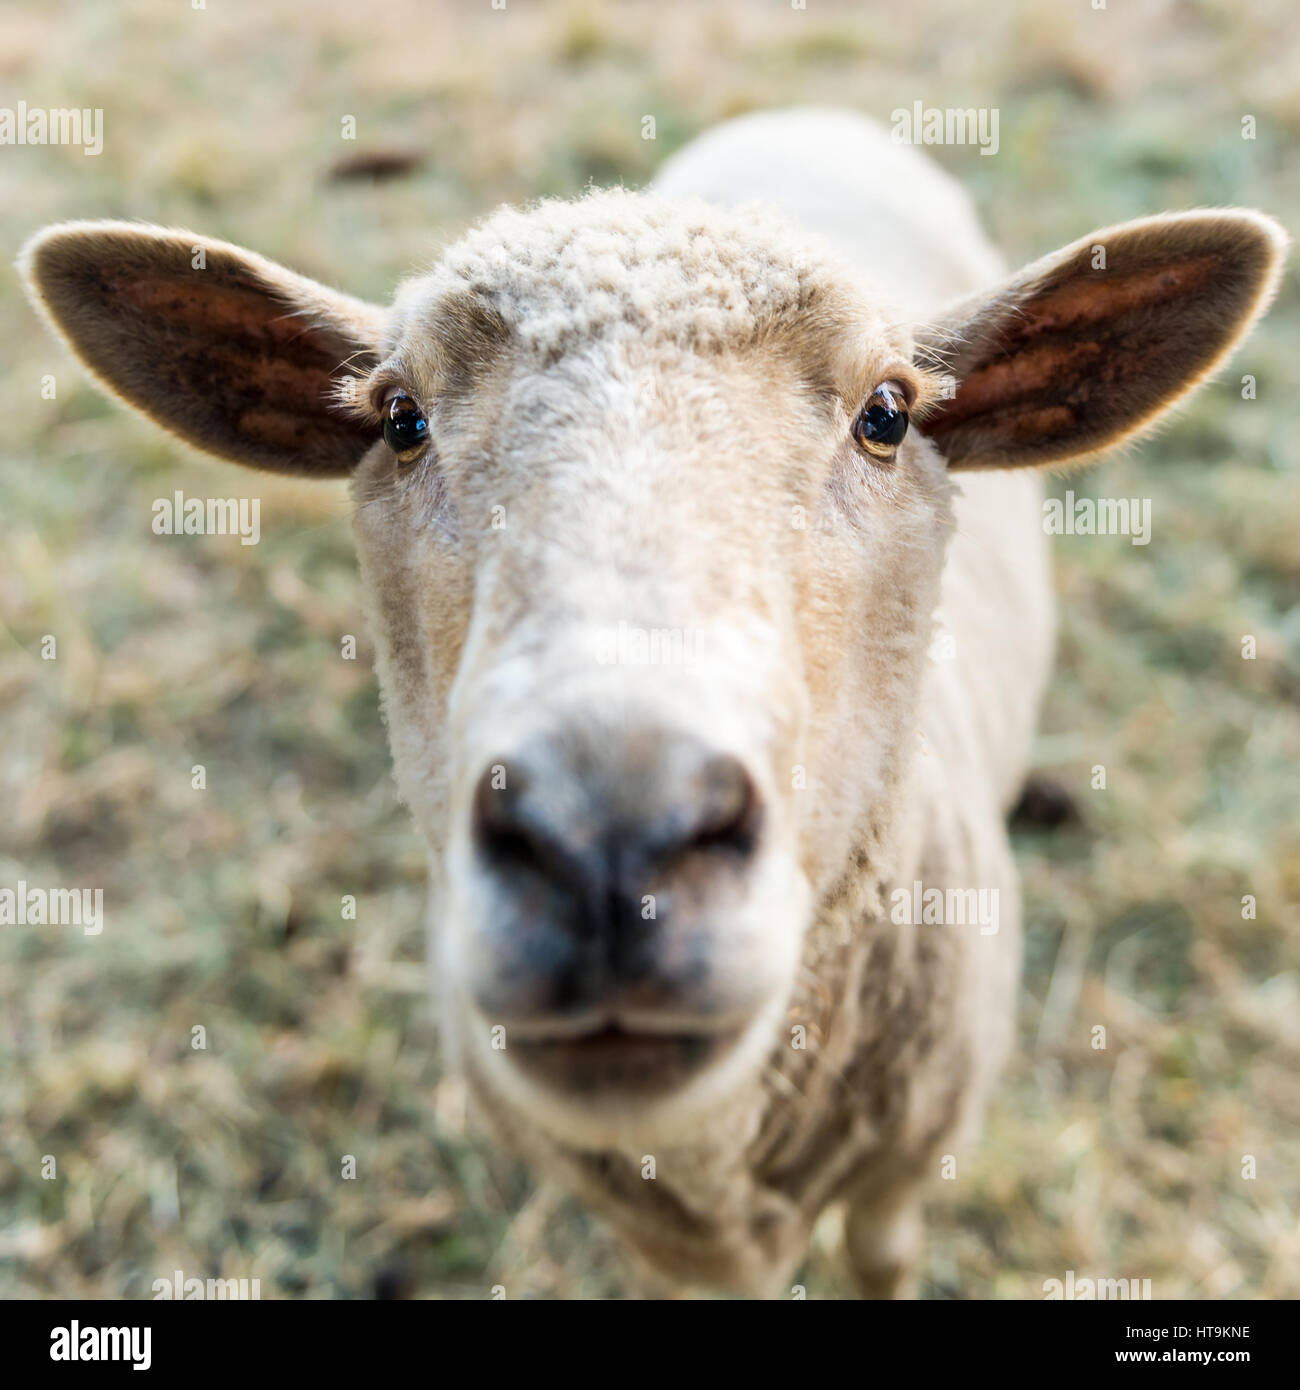 Curious sheep, funny domestic animal - Stock Image